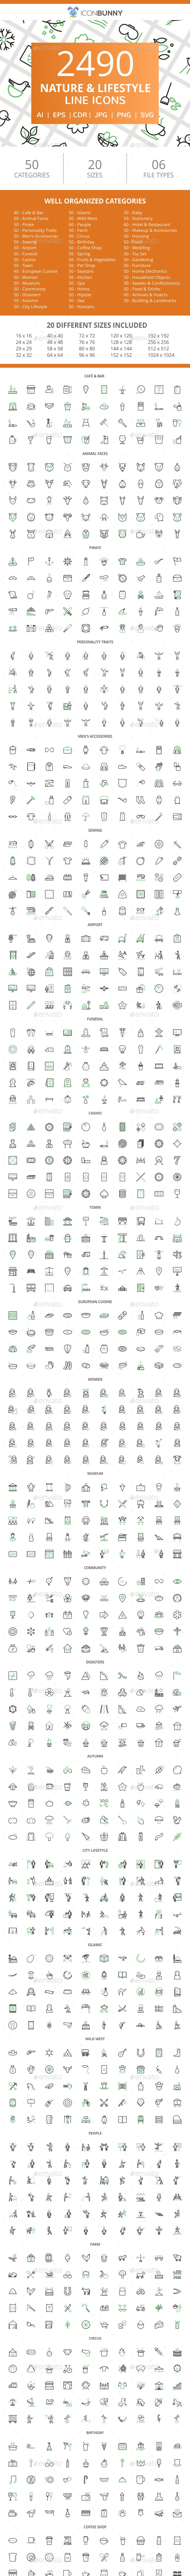 2490 Nature & Lifestyle Line Green & Black Icons - Icons